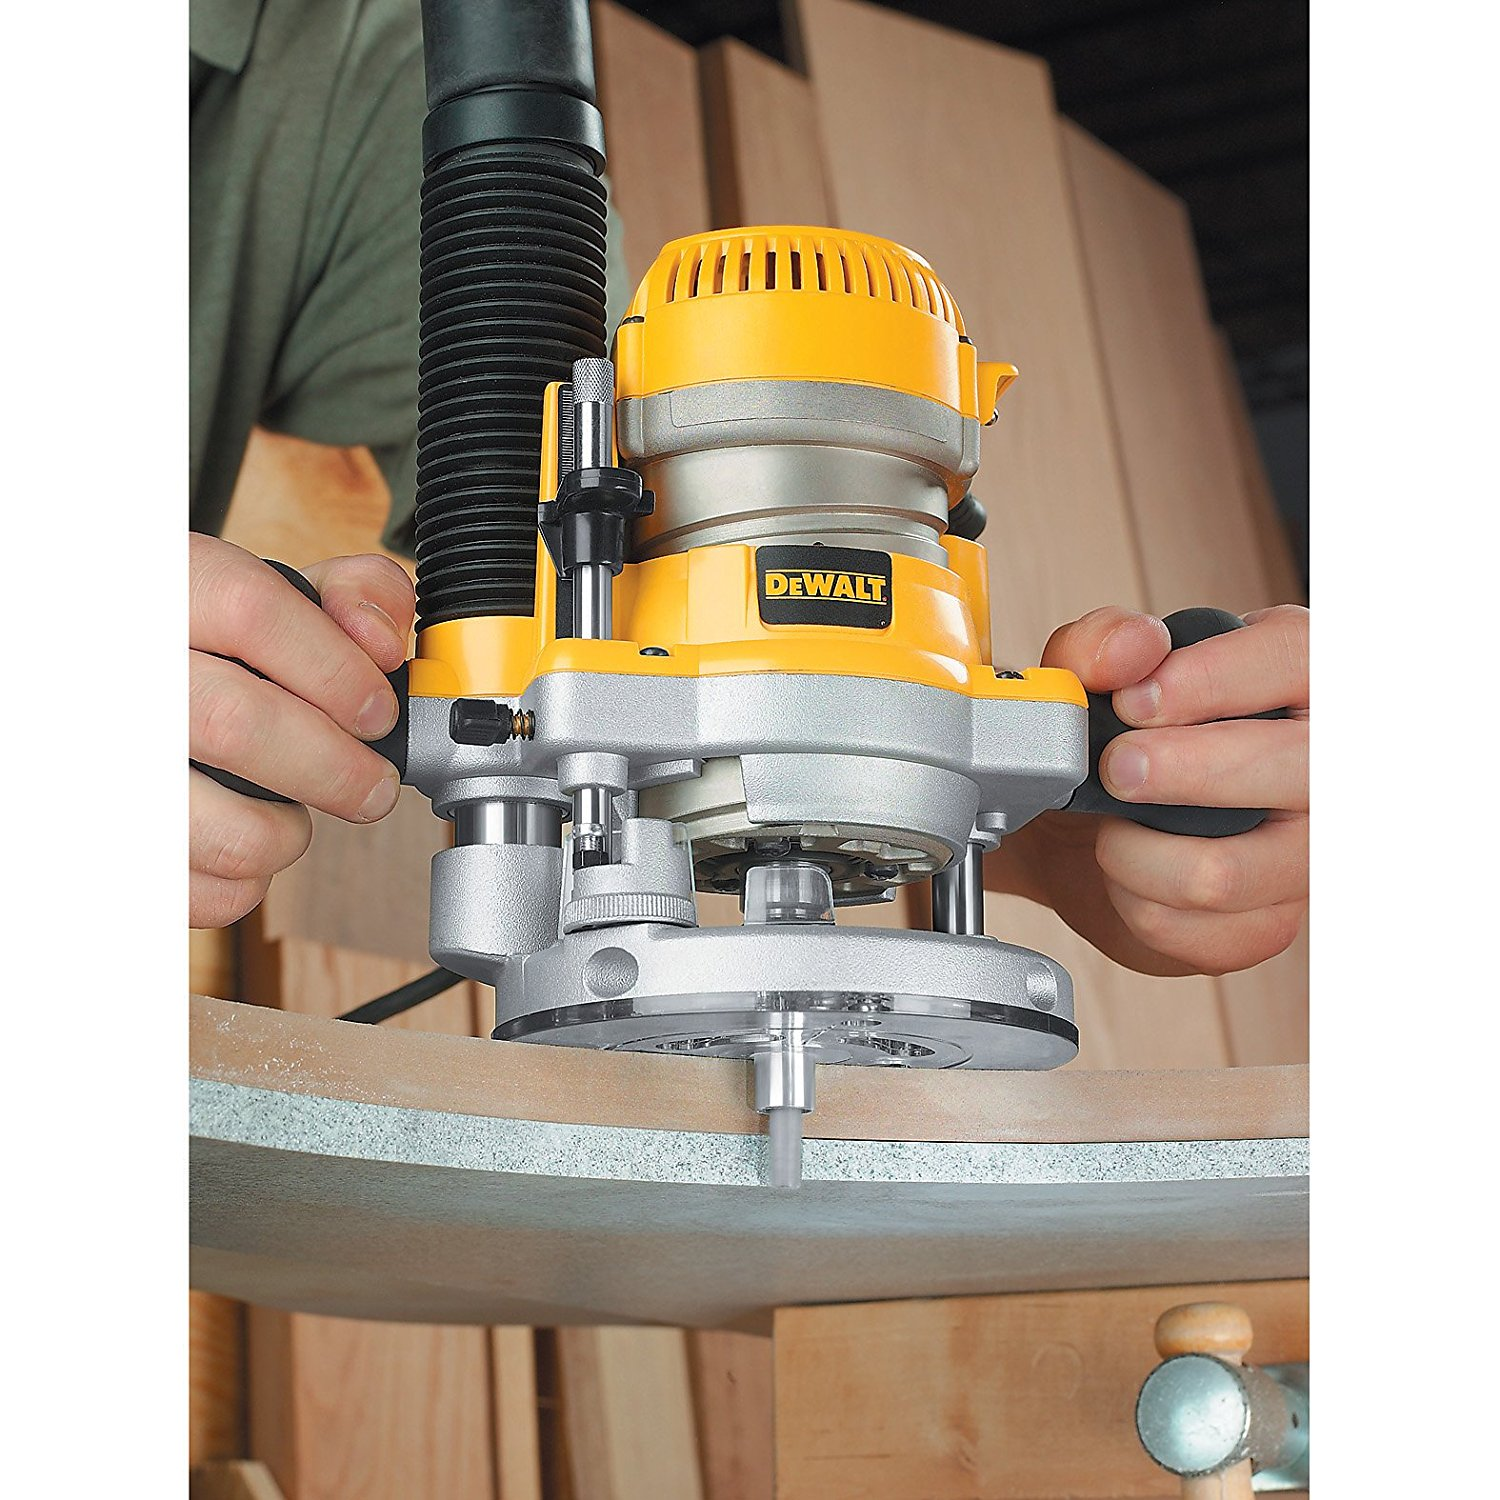 DEWALT drill press review